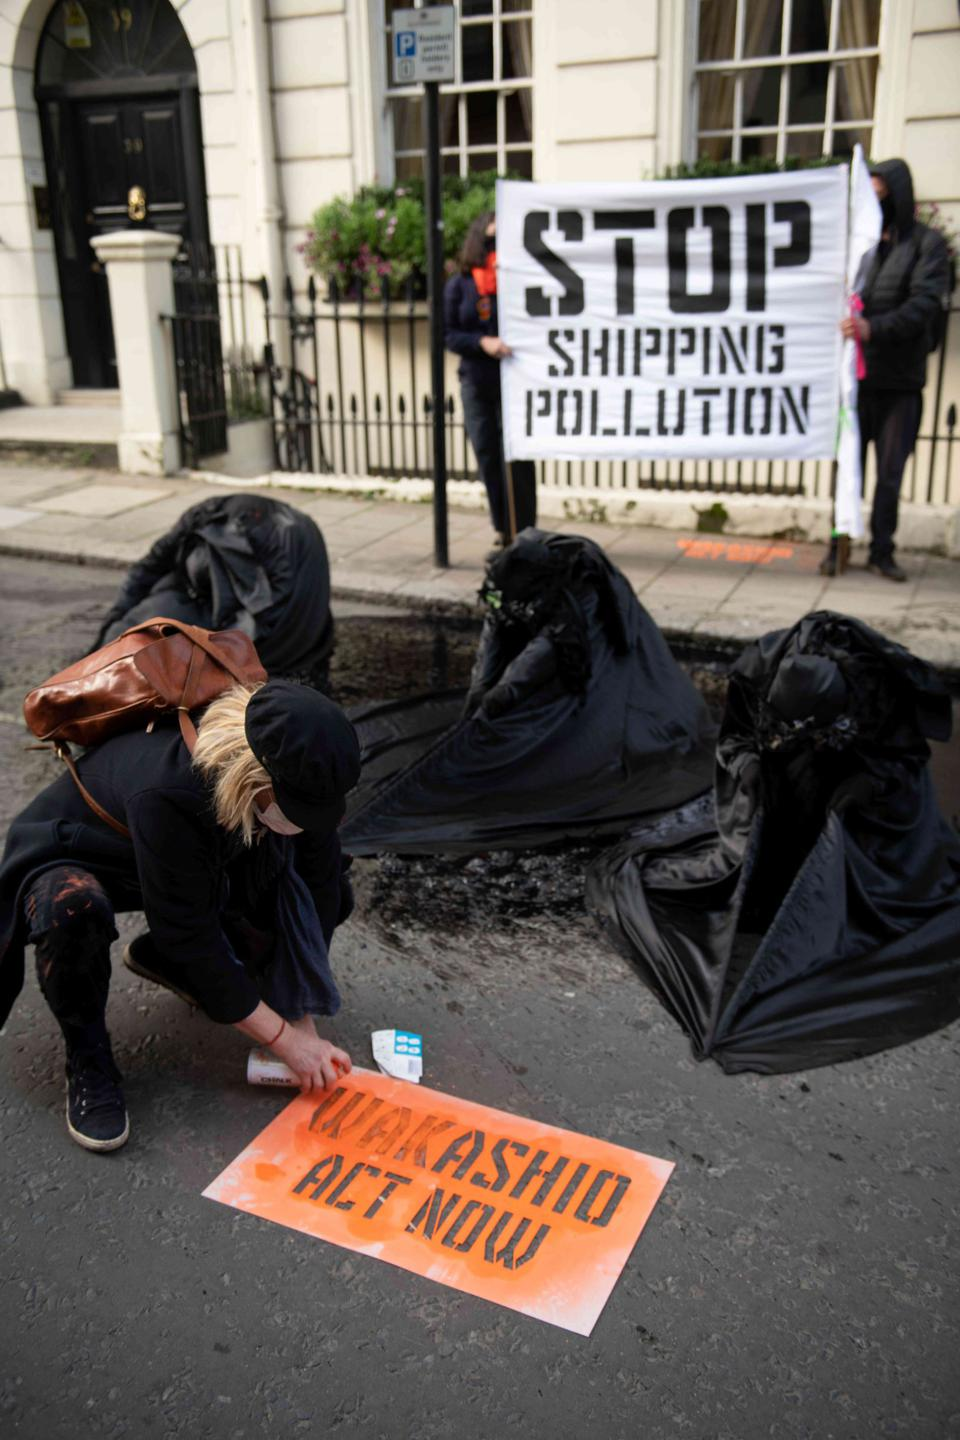 19 Oct: Protestors outside the Panama Embassy highlighting the ongoing issues caused by the Wakashio oil spill in Mauritius